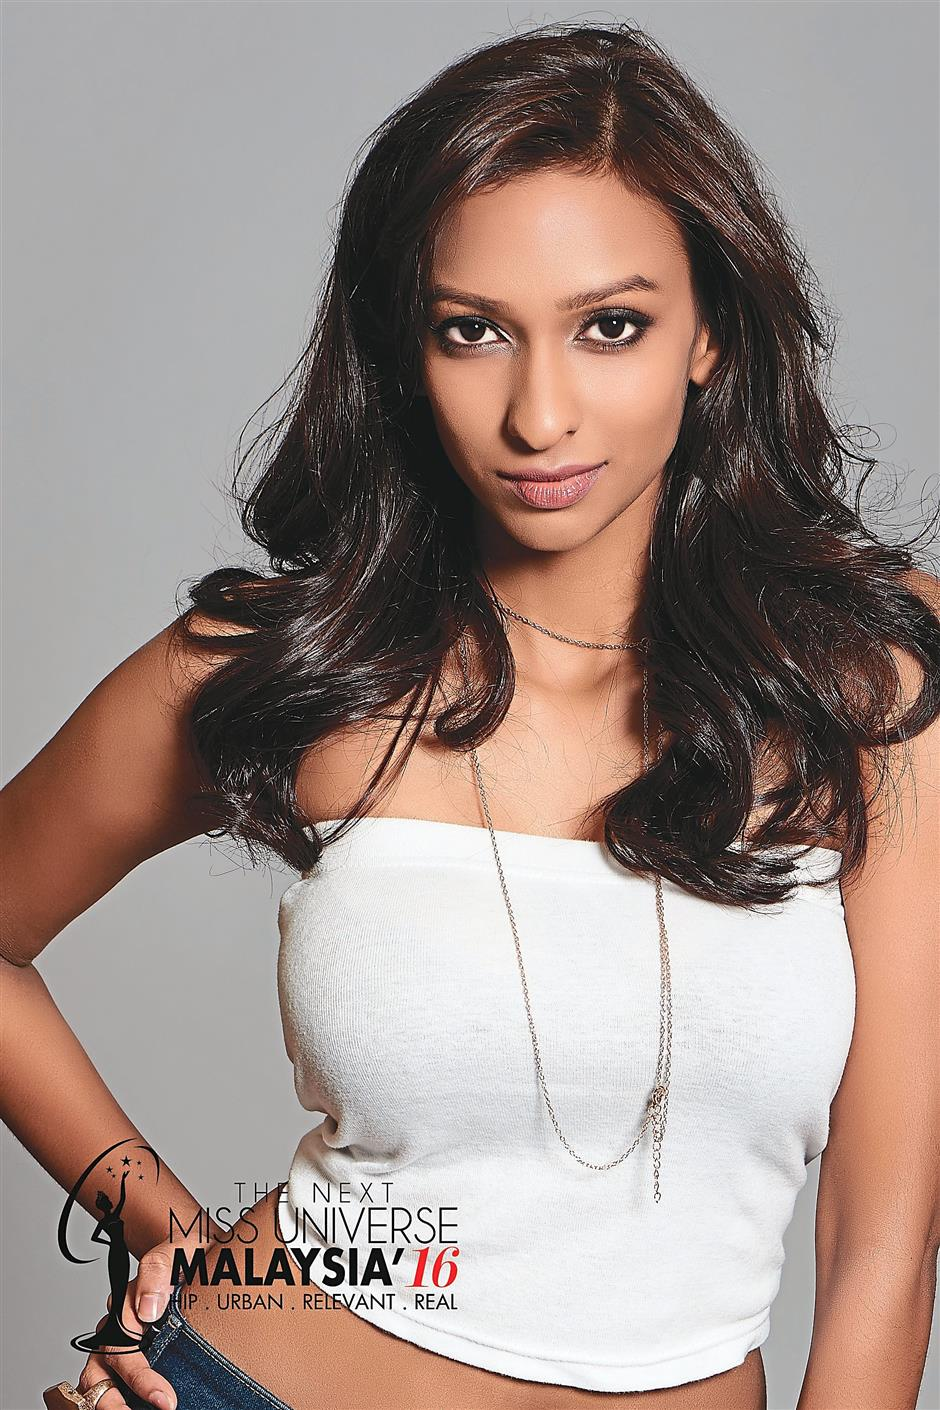 Dhivya is inspired by prestigious beauty queens such as Sushmita Sen.